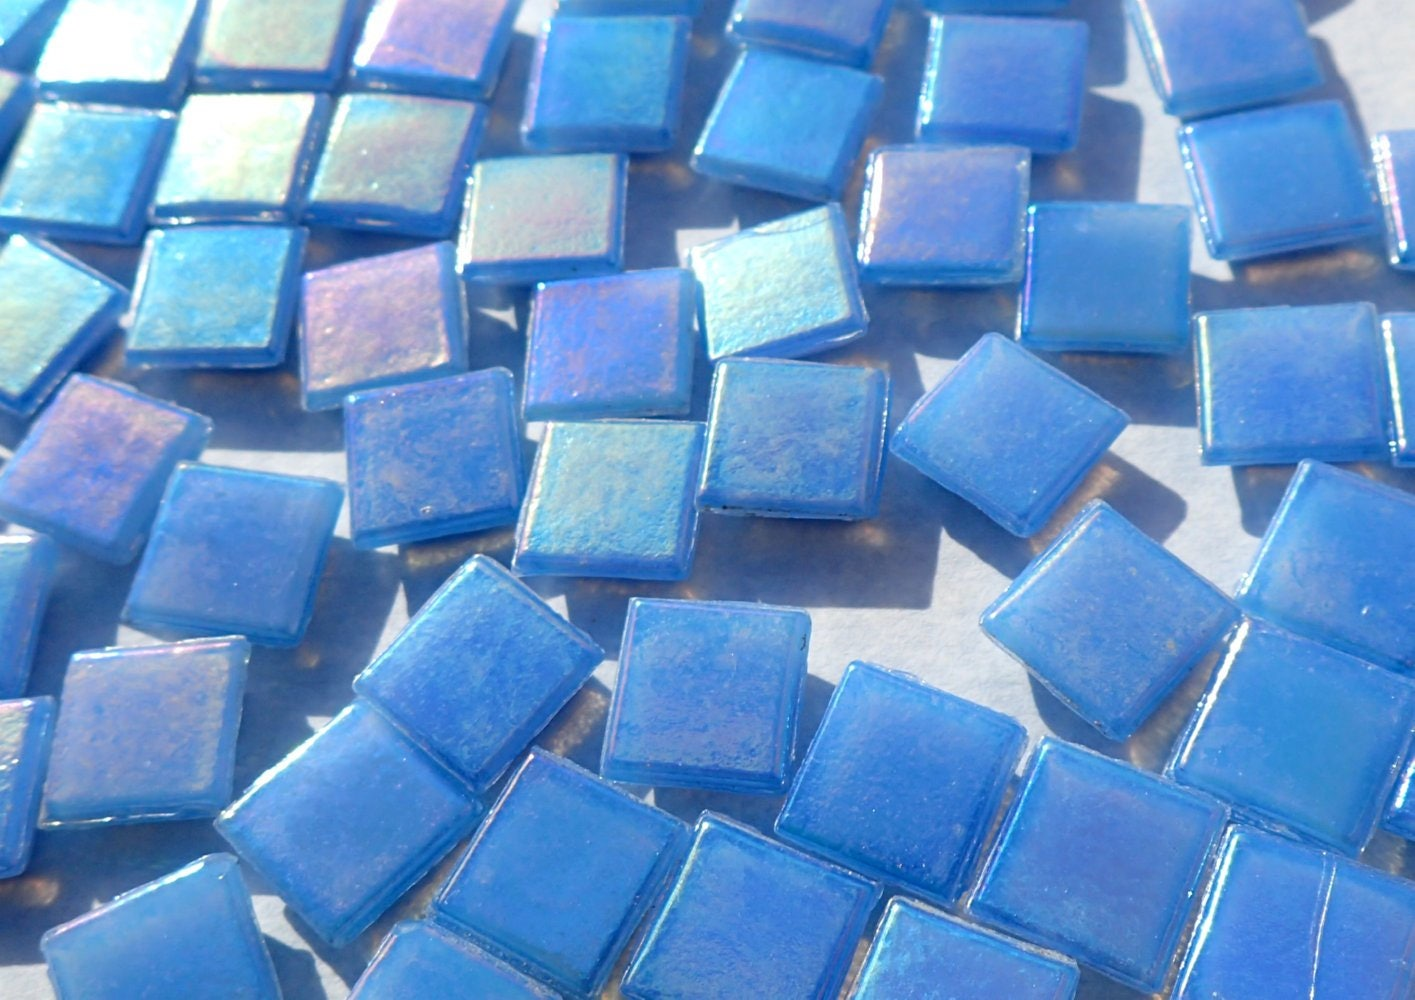 Sky Blue Iridescent Venetian Glass Tiles - 1 cm - Approx 3/8 inch ...